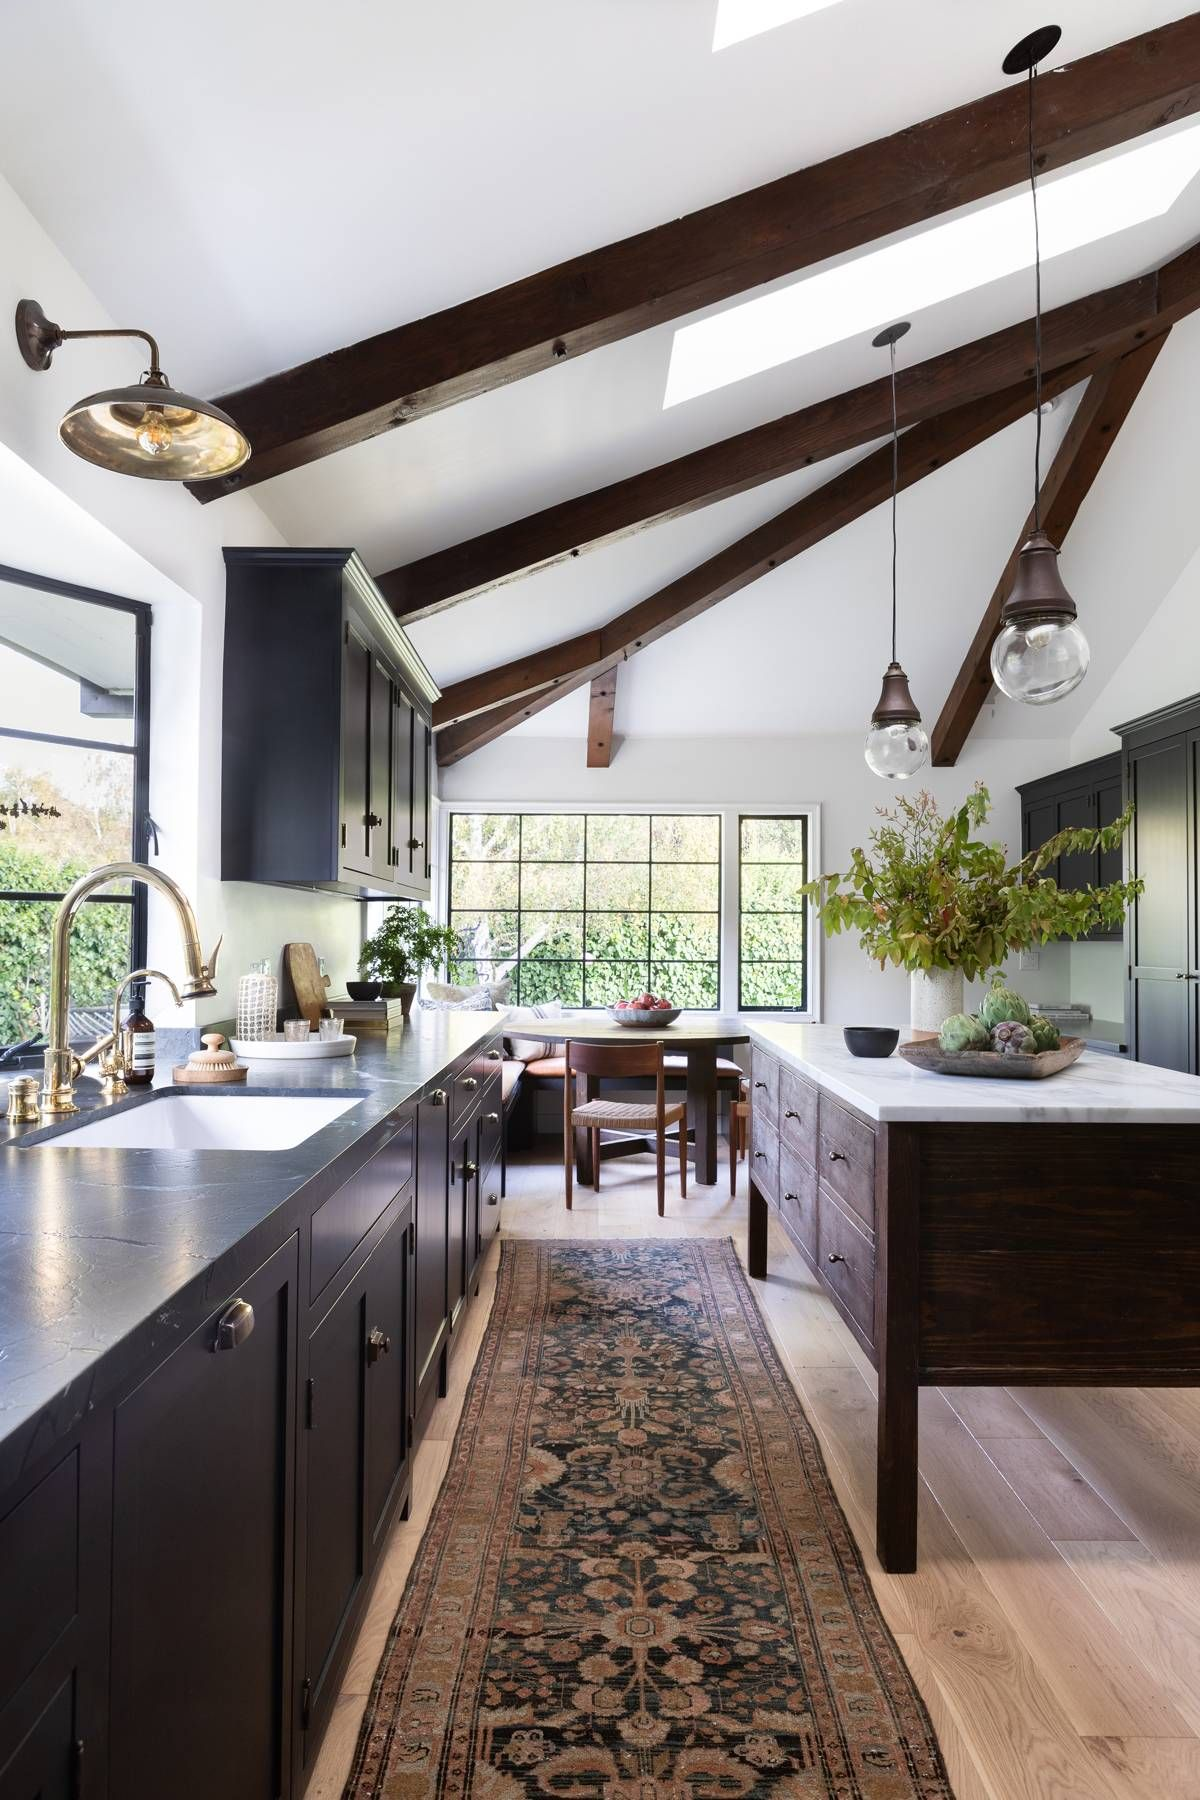 The One Interior Design Blog You Need To Follow Interior Design Kitchen Black Kitchen Countertops Kitchen Trends